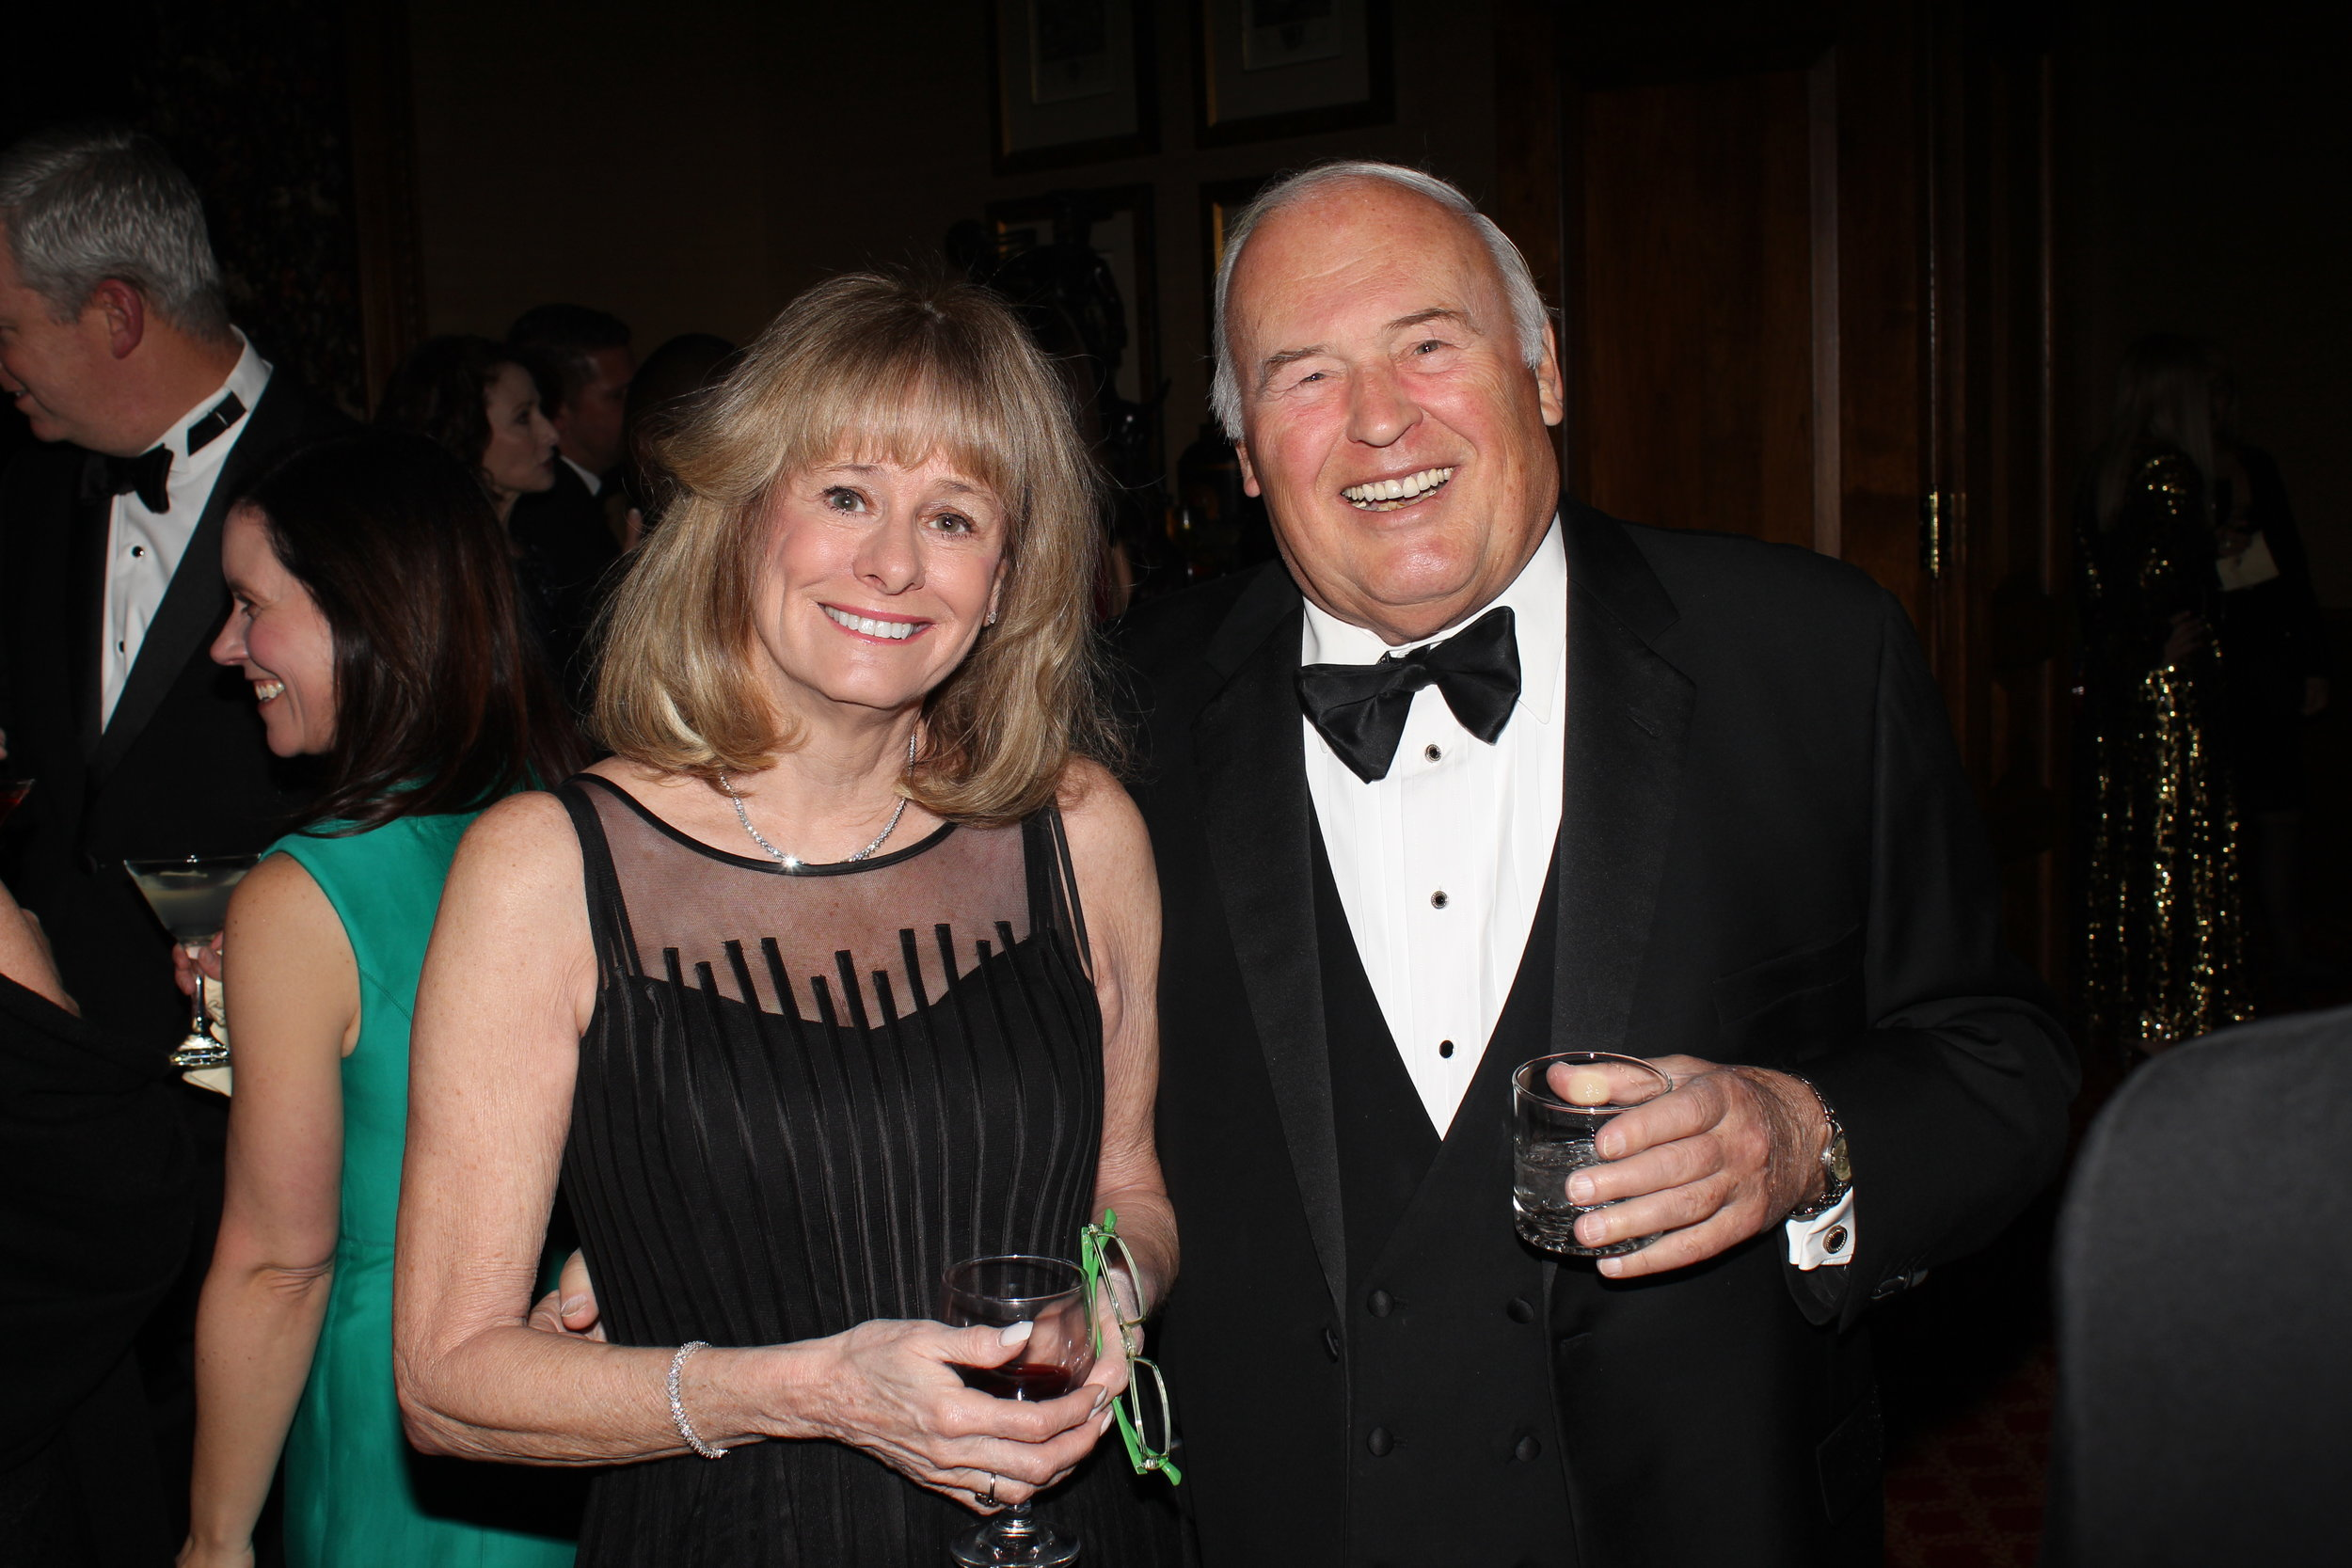 Kathy Reichs, internationally renowned author and creator of the TV show,  Bones , with her husband, Paul.